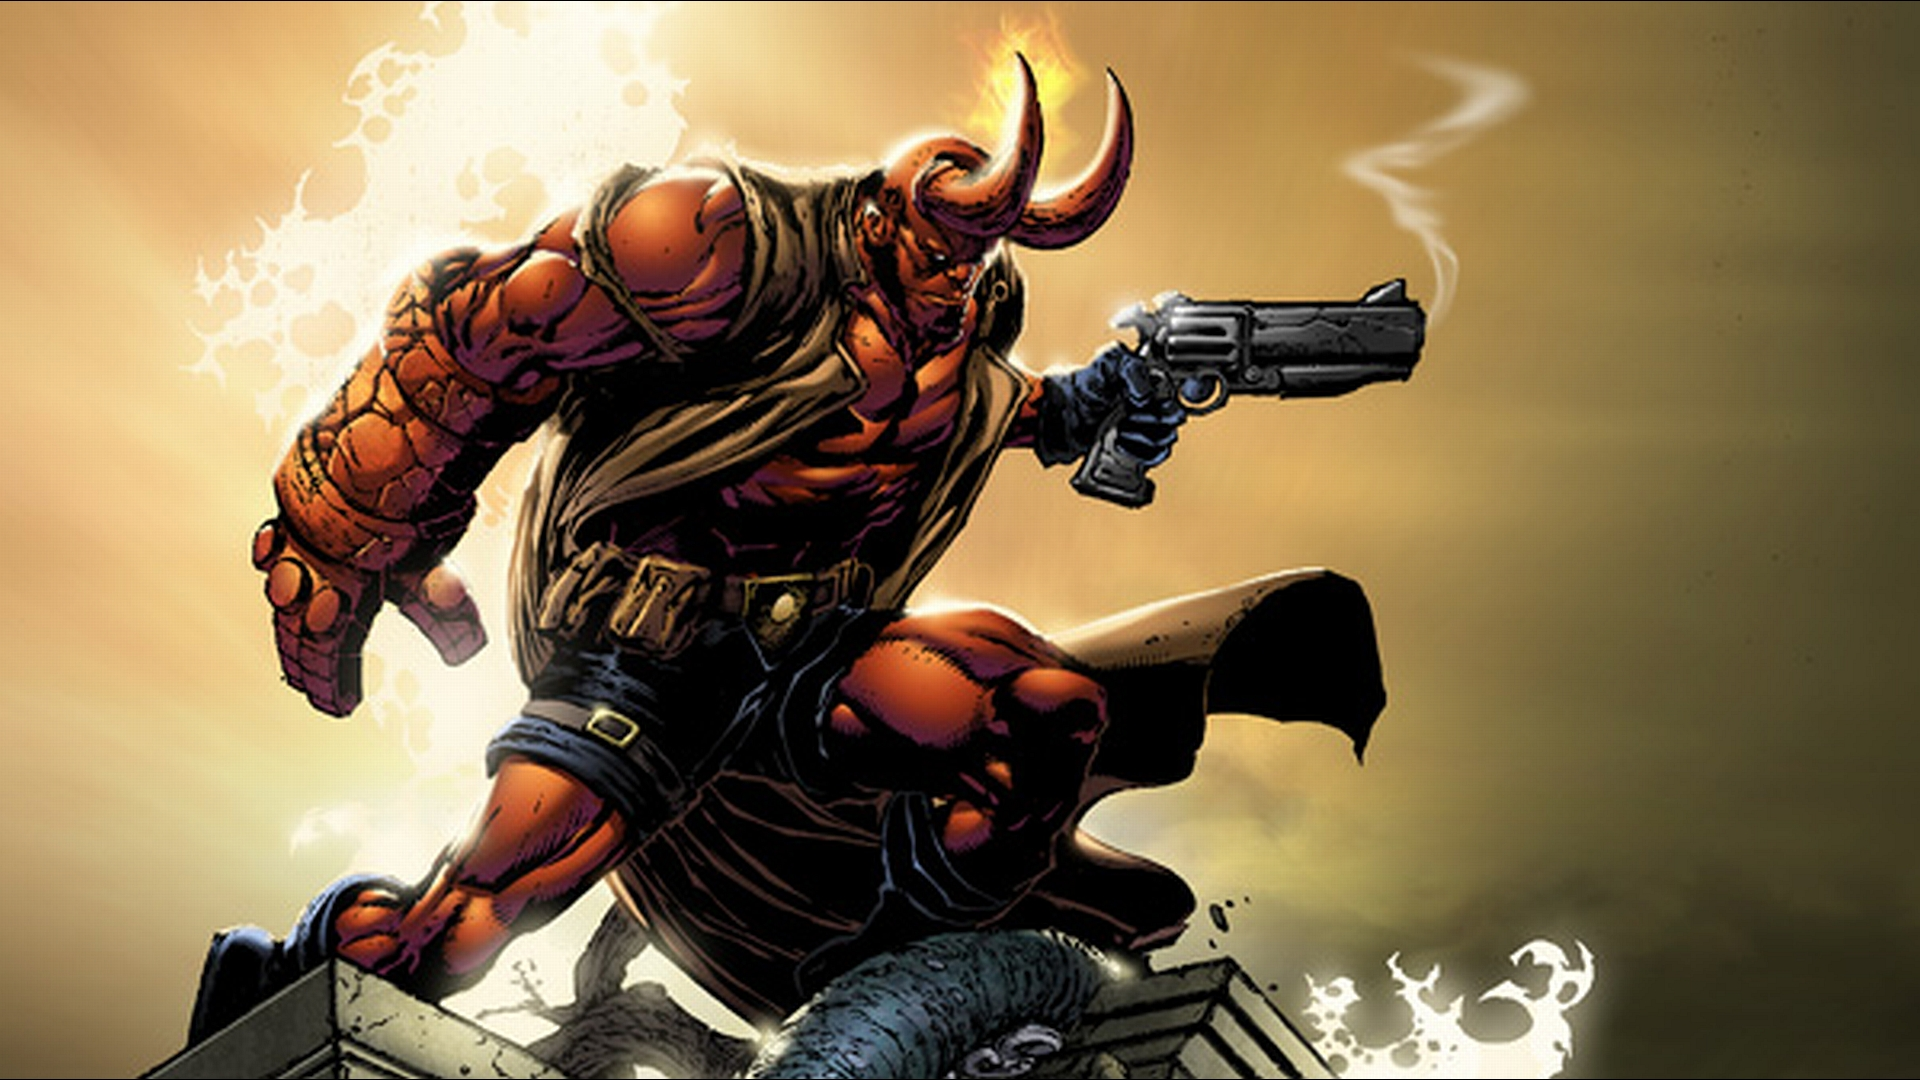 Wallpaper Abyss Explore the Collection Hellboy Comics Hellboy 162537 1920x1080